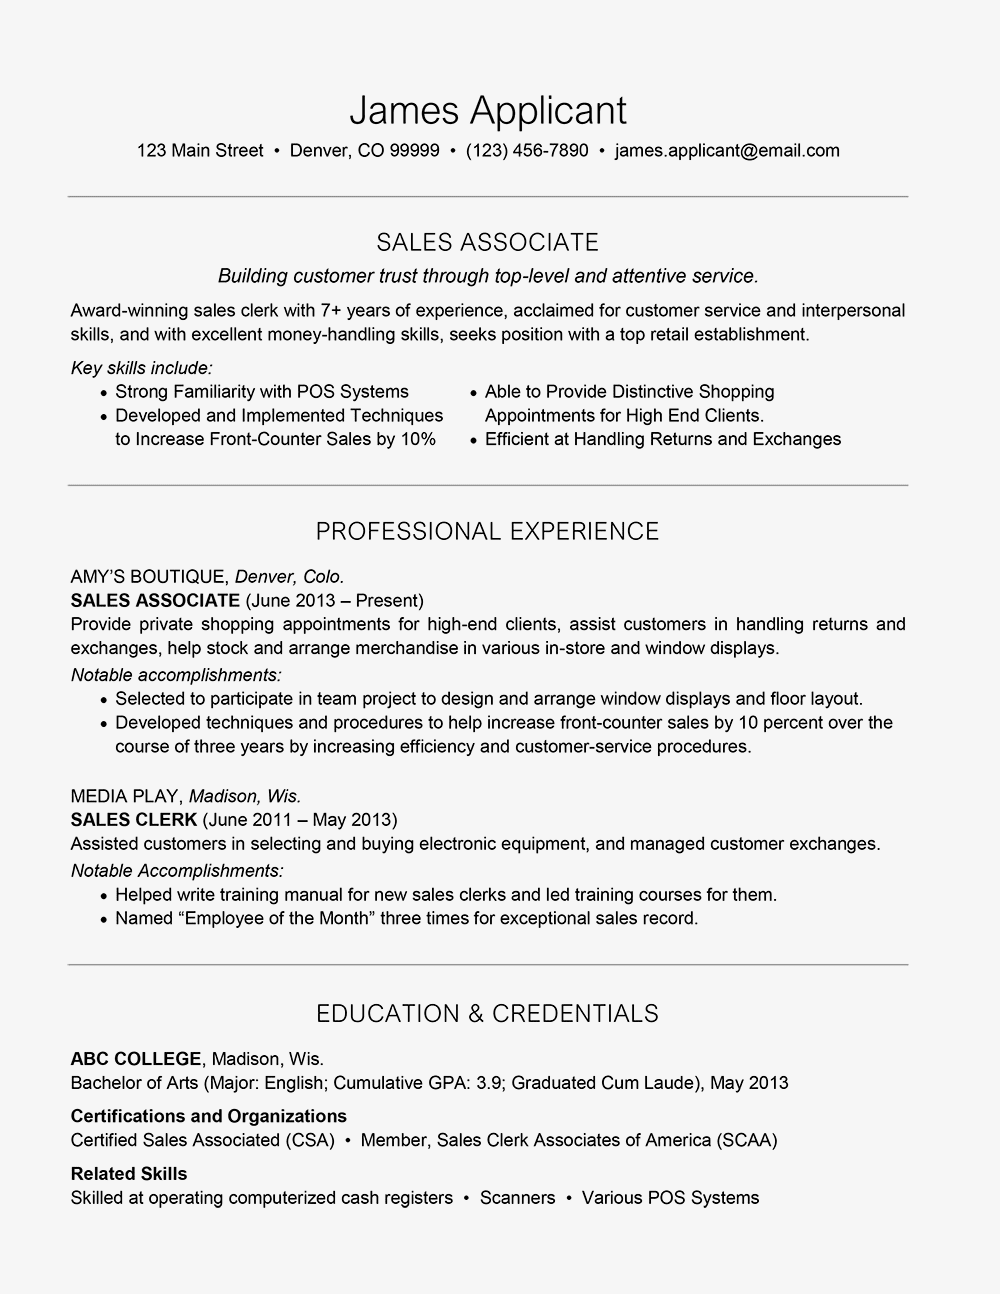 resume headline samples